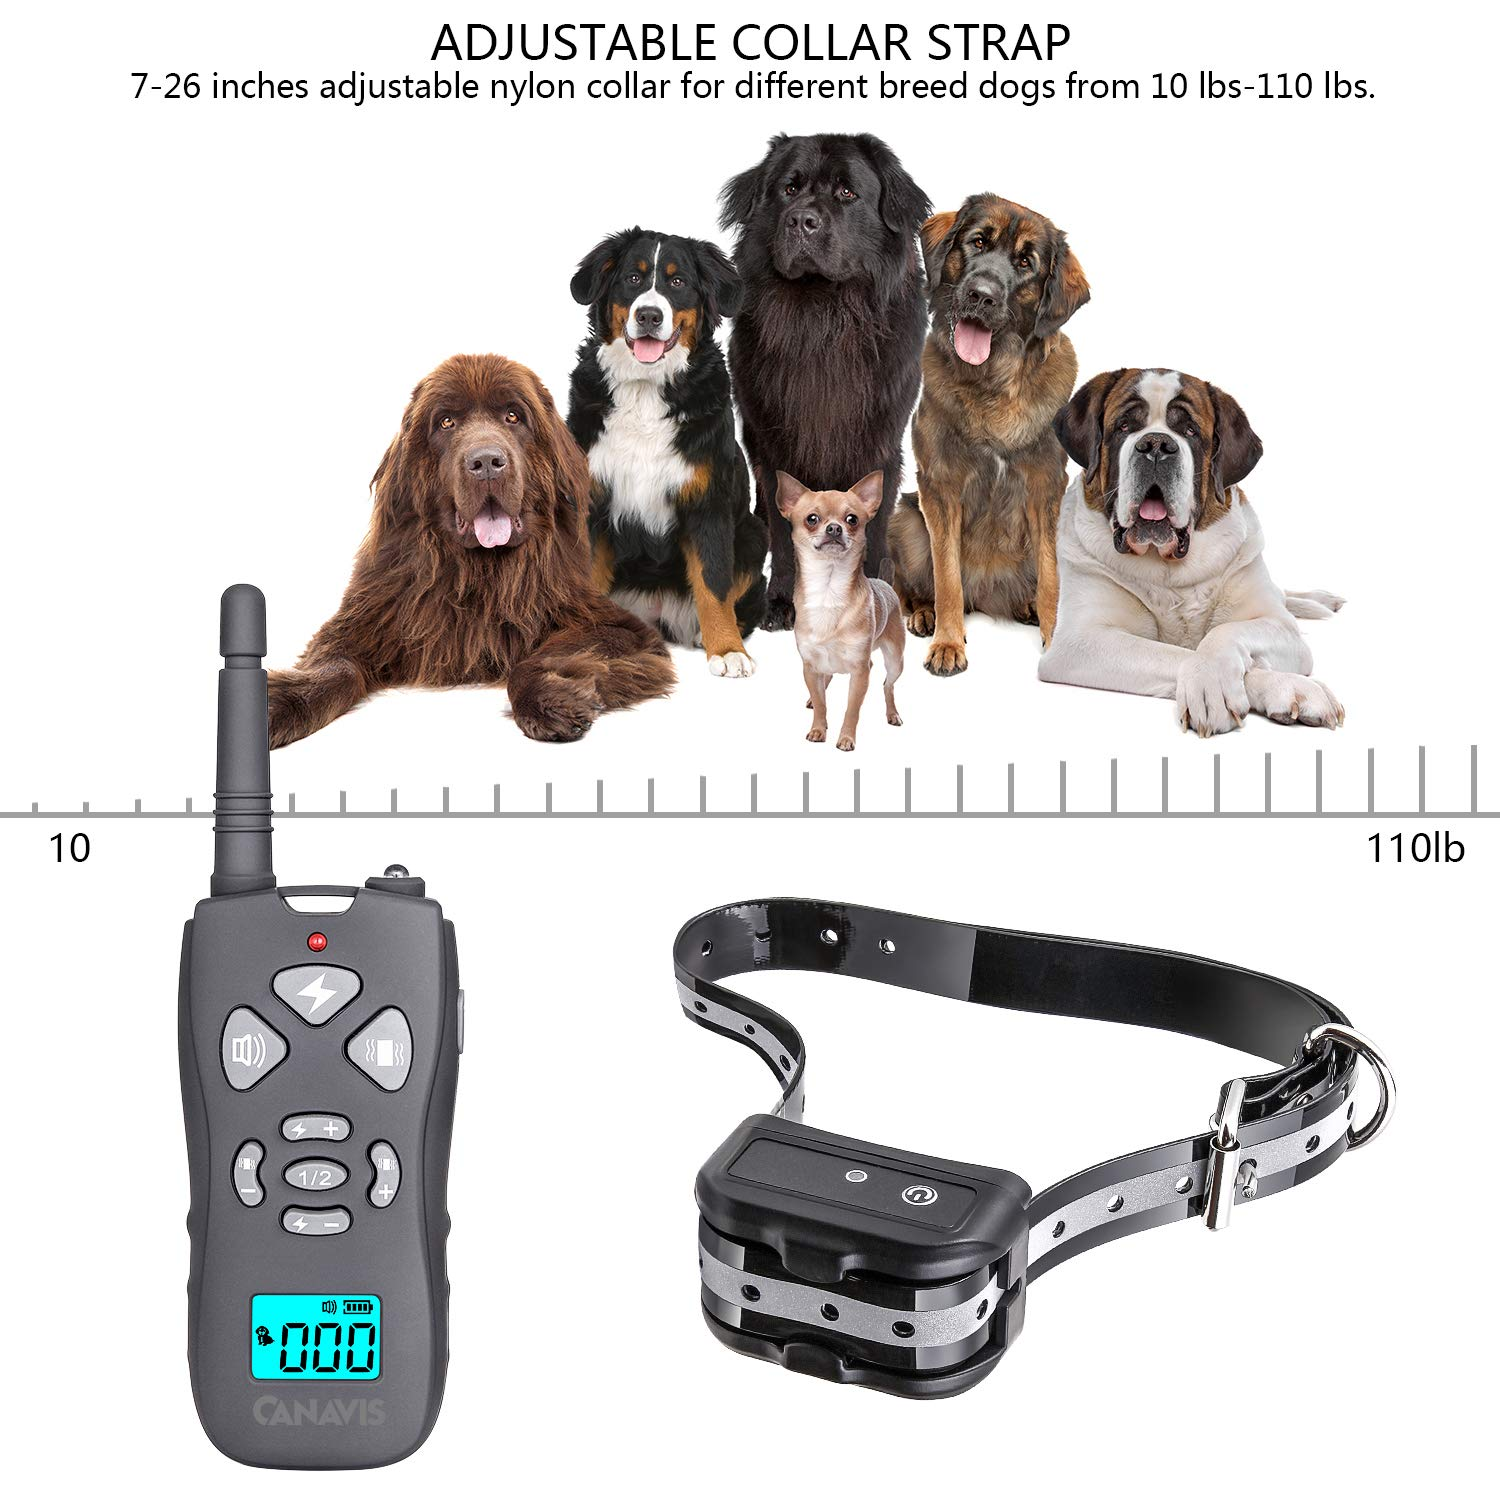 CANAVIS Dog Shock Collar with 1800Ft Remote, Waterproof Dog Training Collar, Rechargeable Electronic Collar with Vibration Tone Shock Modes, Adjustable Collar Strap for Small Medium Large Dog by CANAVIS (Image #4)